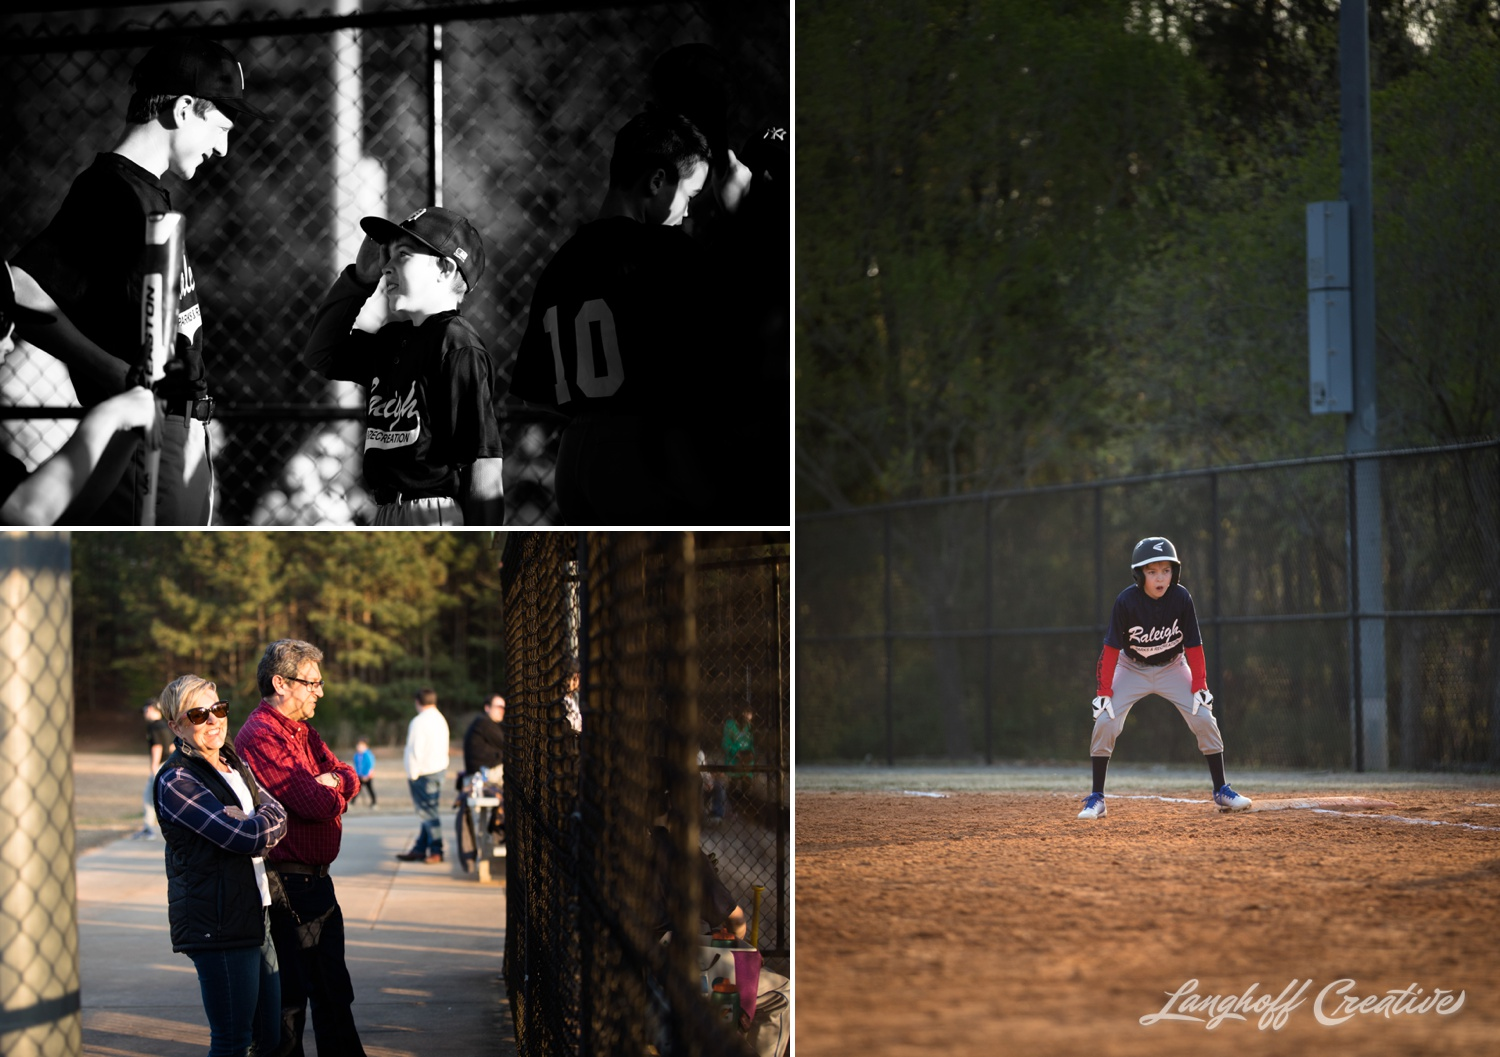 DocumentaryFamilySession-DocumentaryFamilyPhotography-RDUfamily-Baseball-RealLifeSession-LanghoffCreative-George-2018-13-image.jpg